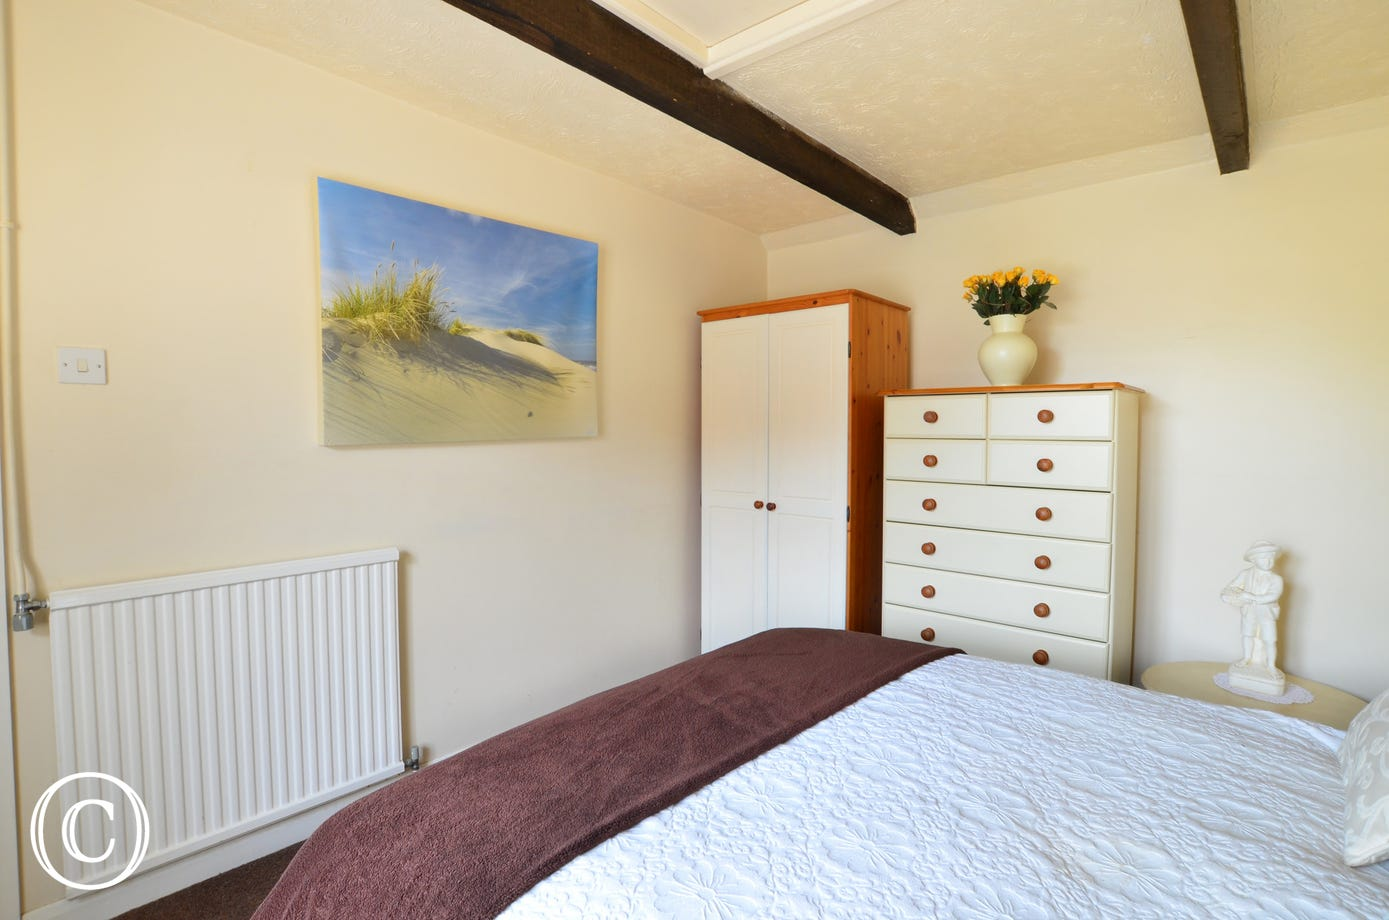 Double bedroom with double bed, chest of drawers and a wardrobe